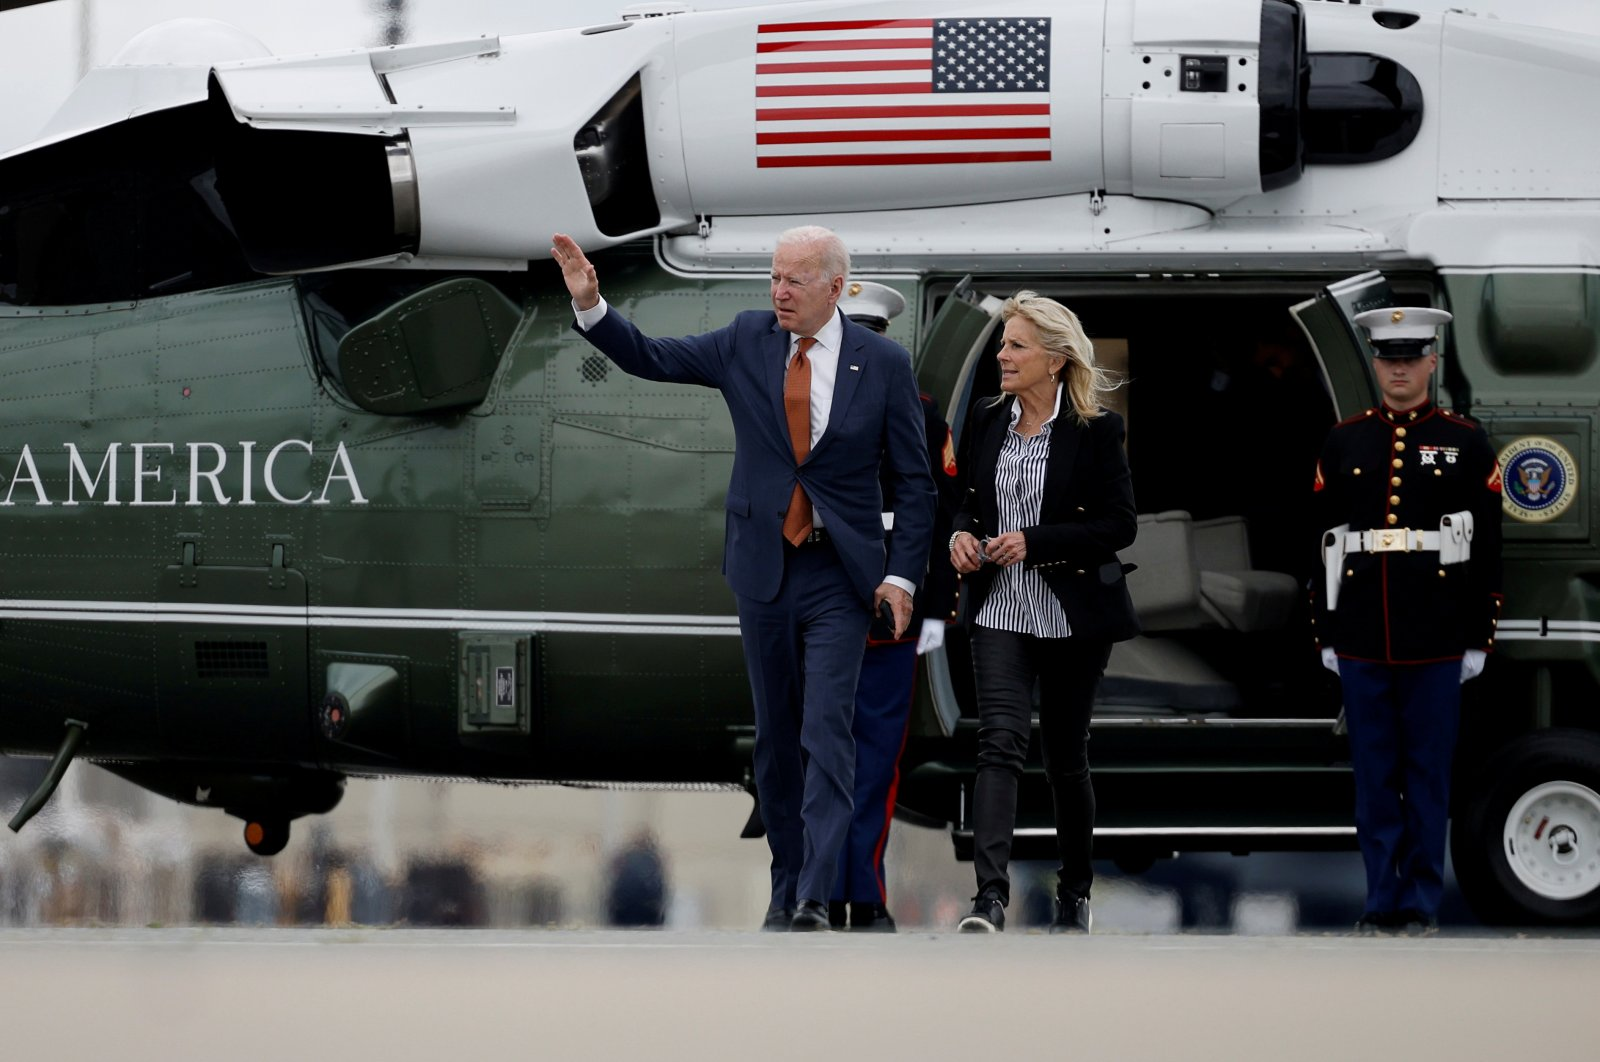 U.S. President Joe Biden (L) and first lady Jill Biden walk from Marine One to board Air Force One for return travel to Washington, D.C. at Dover Air Force Base in Dover, Delaware, U.S., June 4, 2021. (Reuters Photo)